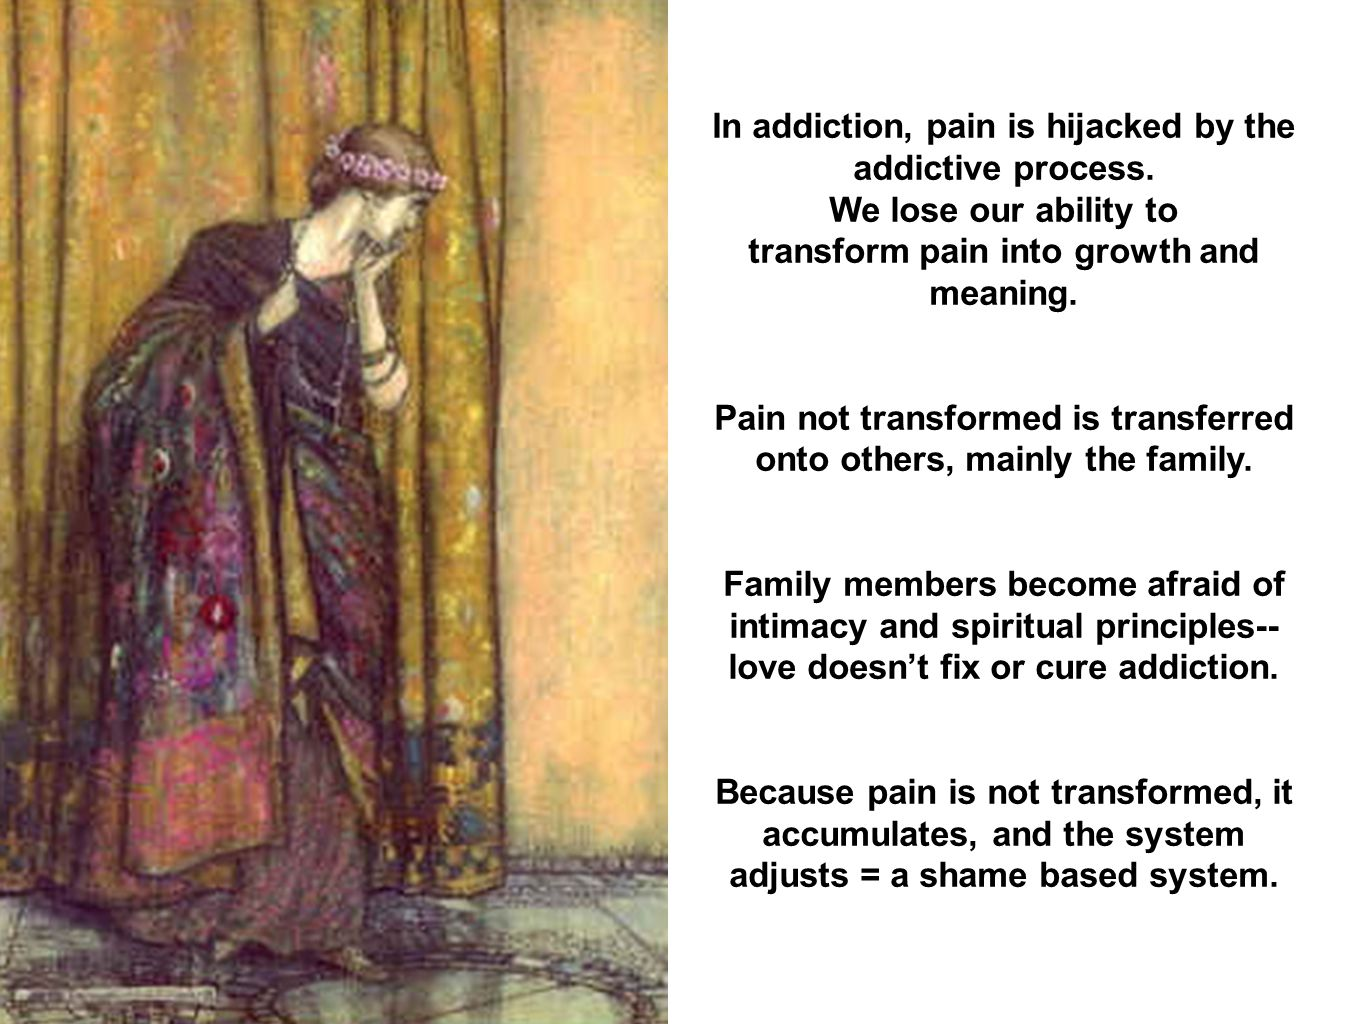 In addiction, pain is hijacked by the addictive process.